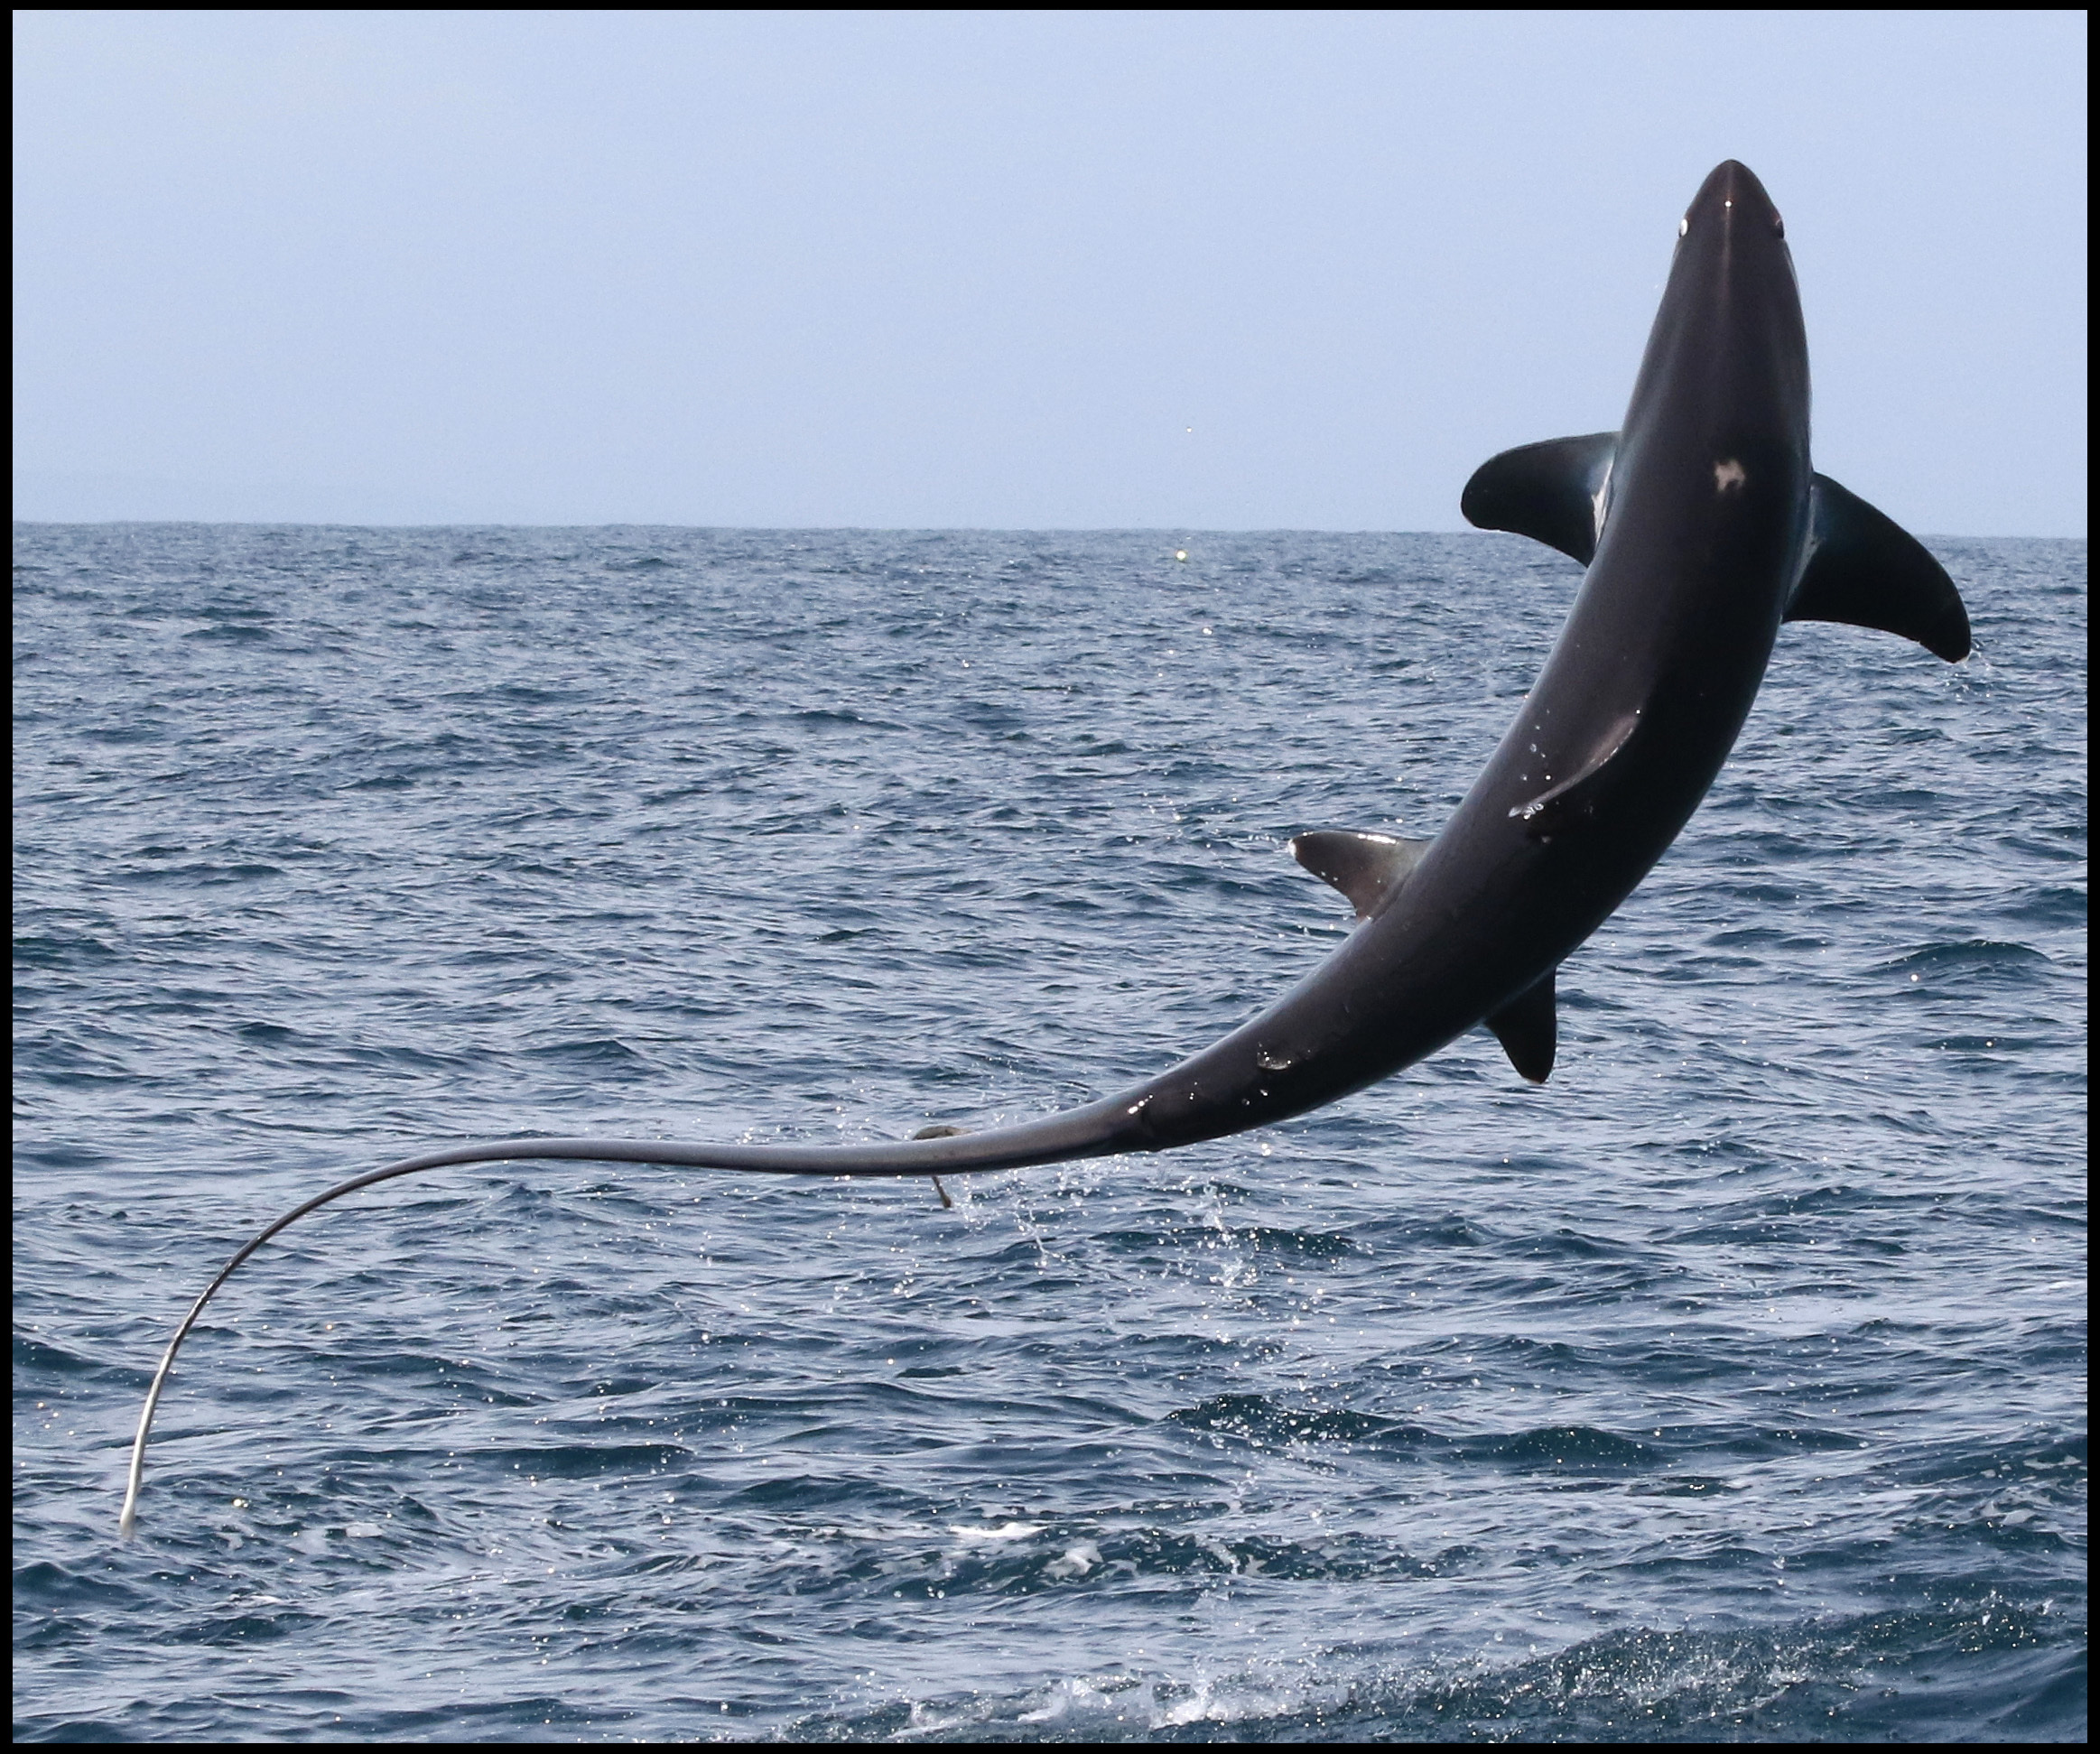 The spectacular moment a 15ft long thresher shark stunned sightseers in Lyme Bay   Pic: TomBrereton/BNPS